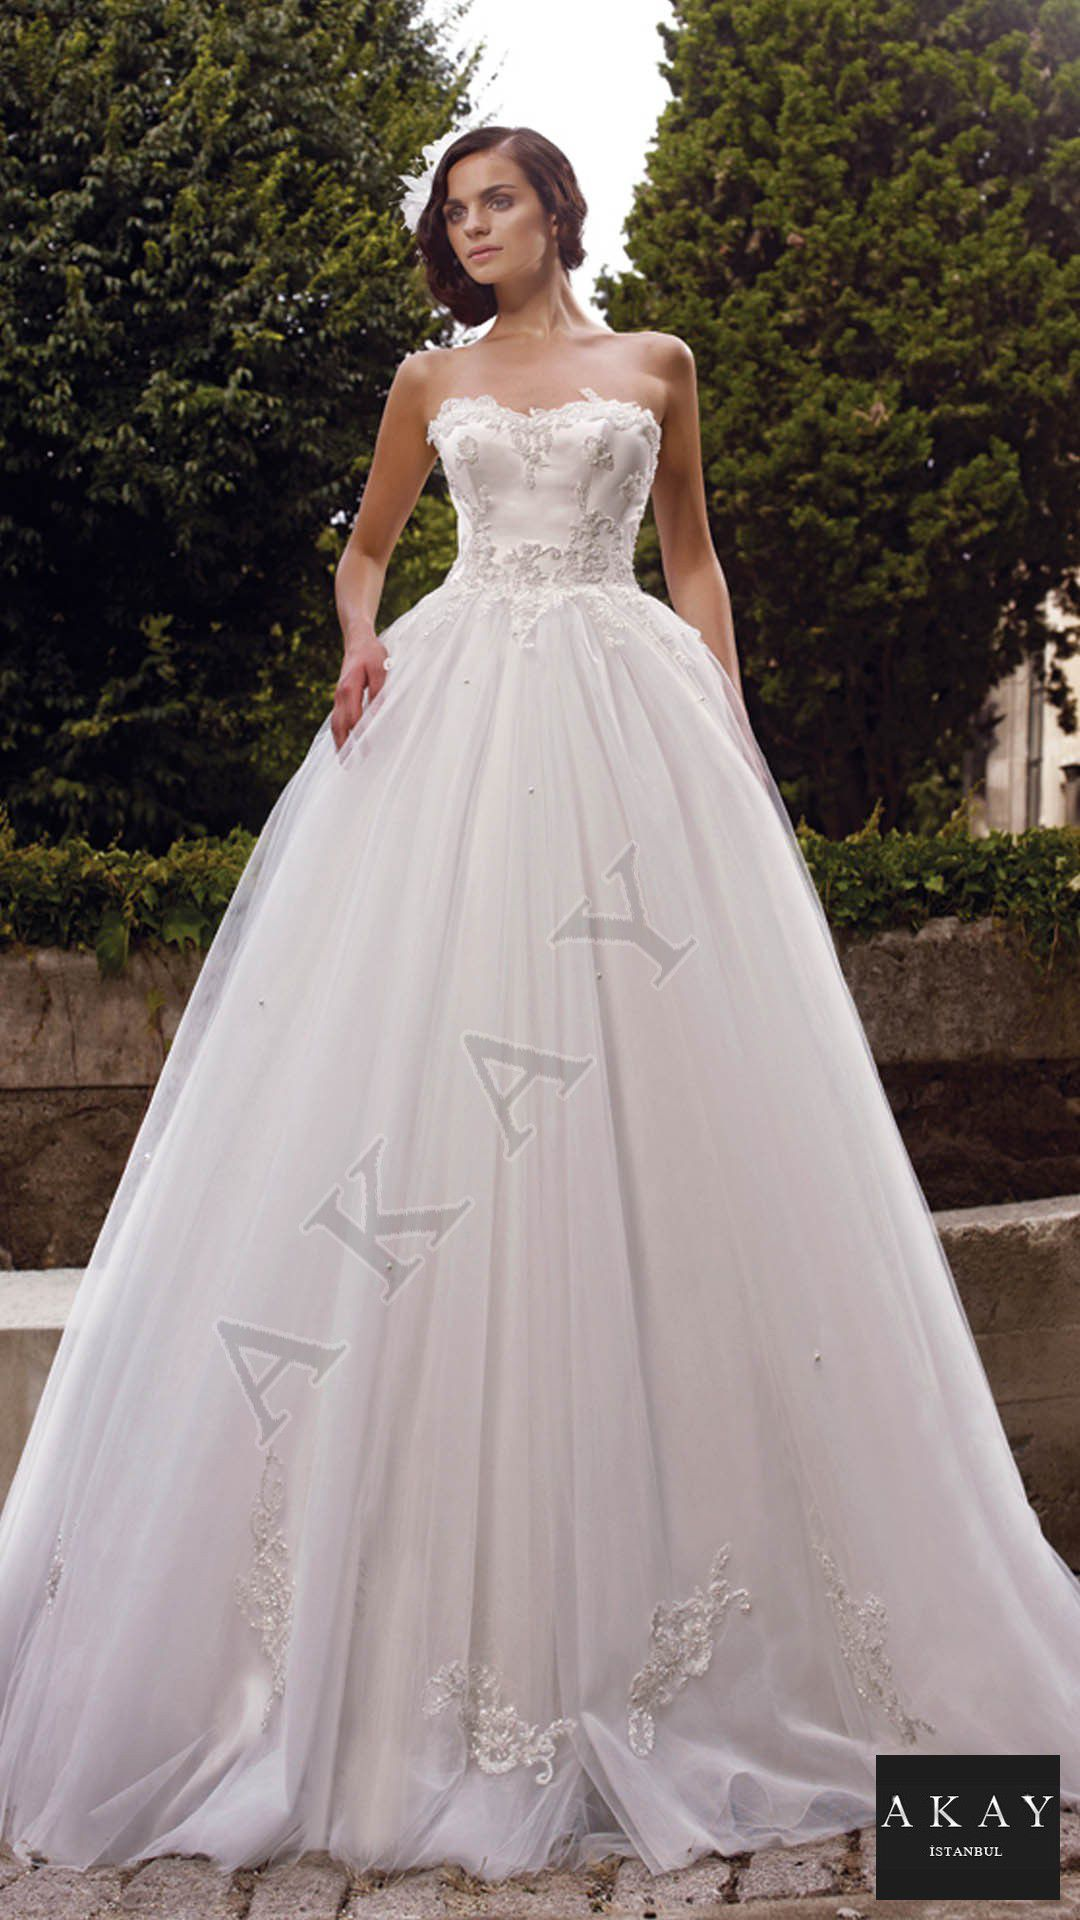 Collection Bridal dresses 2014 - Akay Wedding Dresses